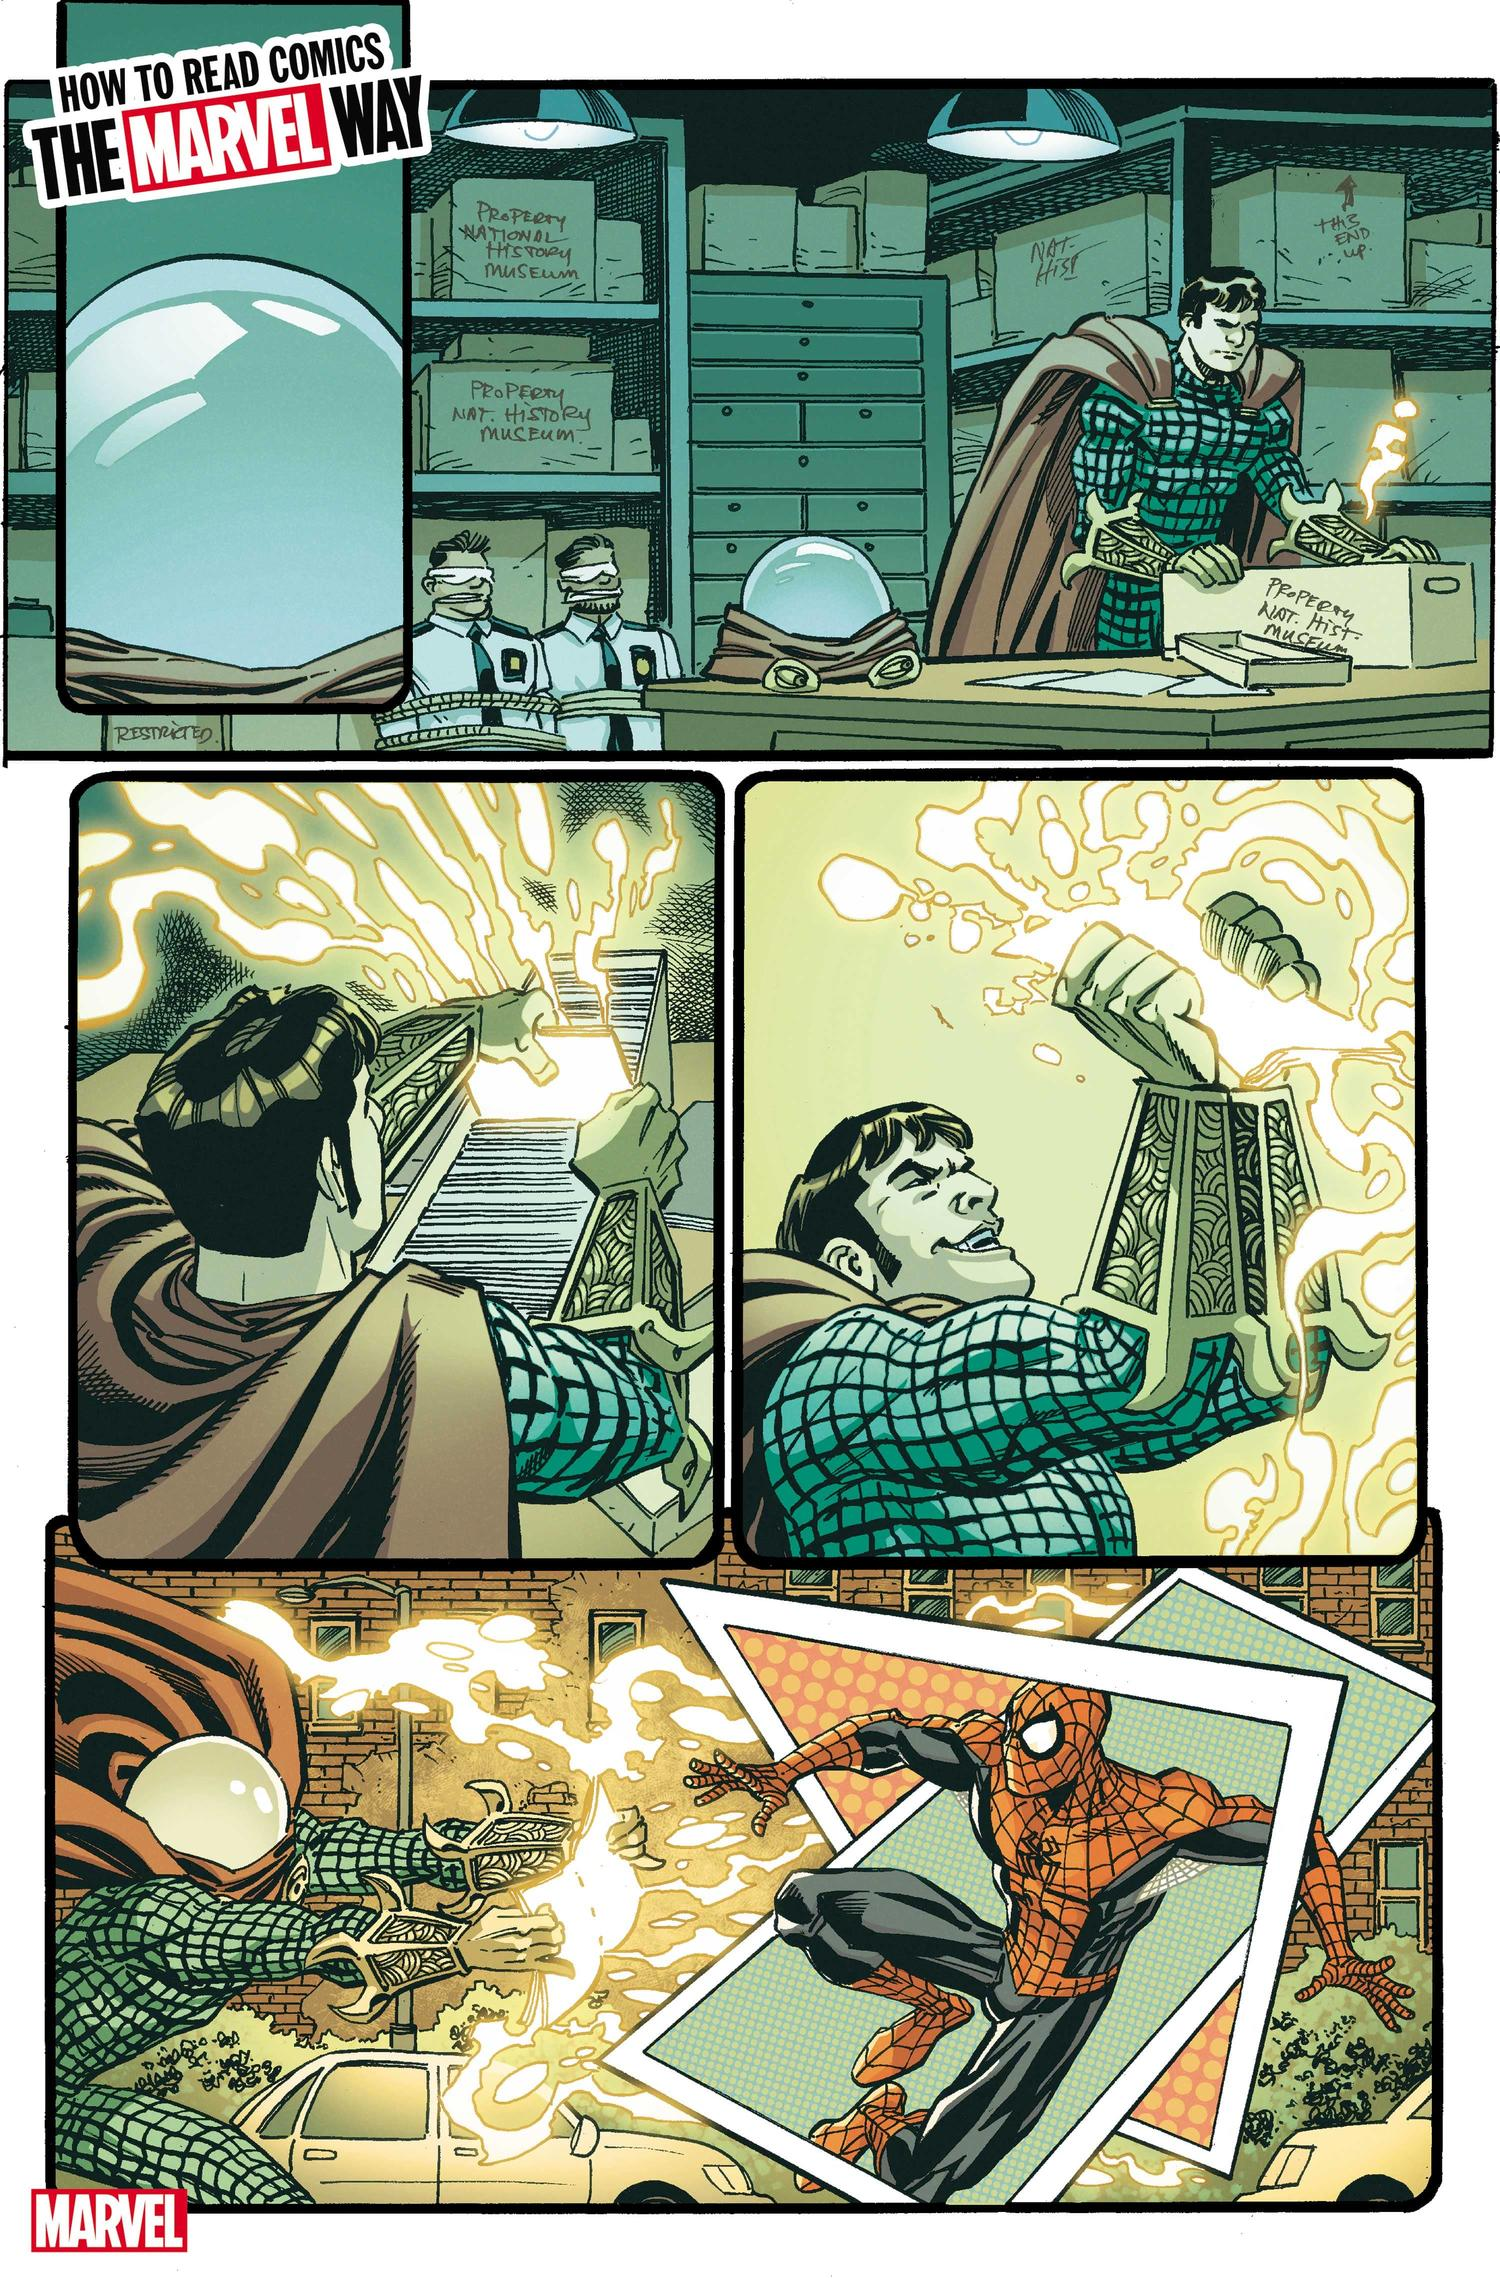 HOW TO READ COMICS THE MARVEL WAY #1 interiors by Scott Koblish with colors by Nolan Woodard